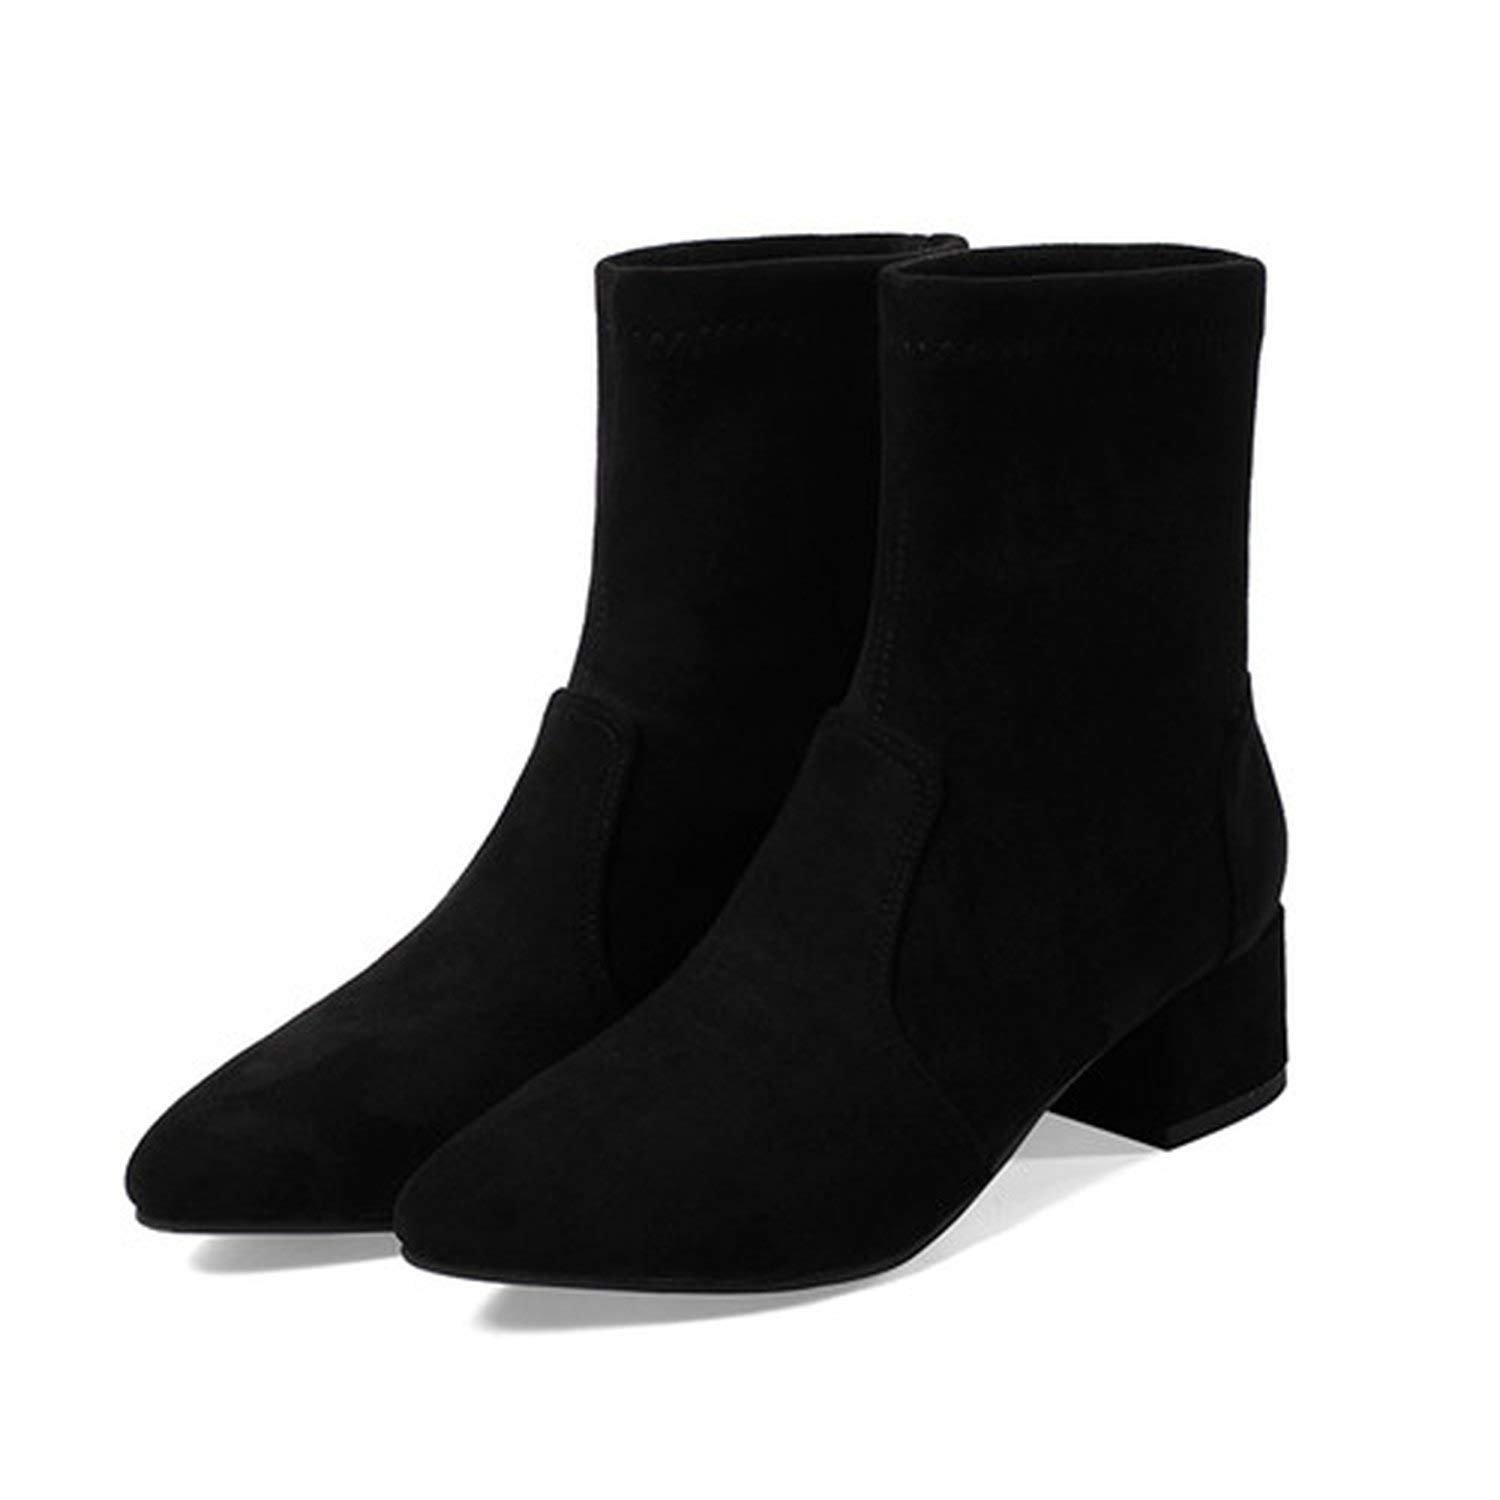 5 black Women's Boots Pointed Toe Yarn Elastic Ankle Boots Thick Heel High Heels shoes